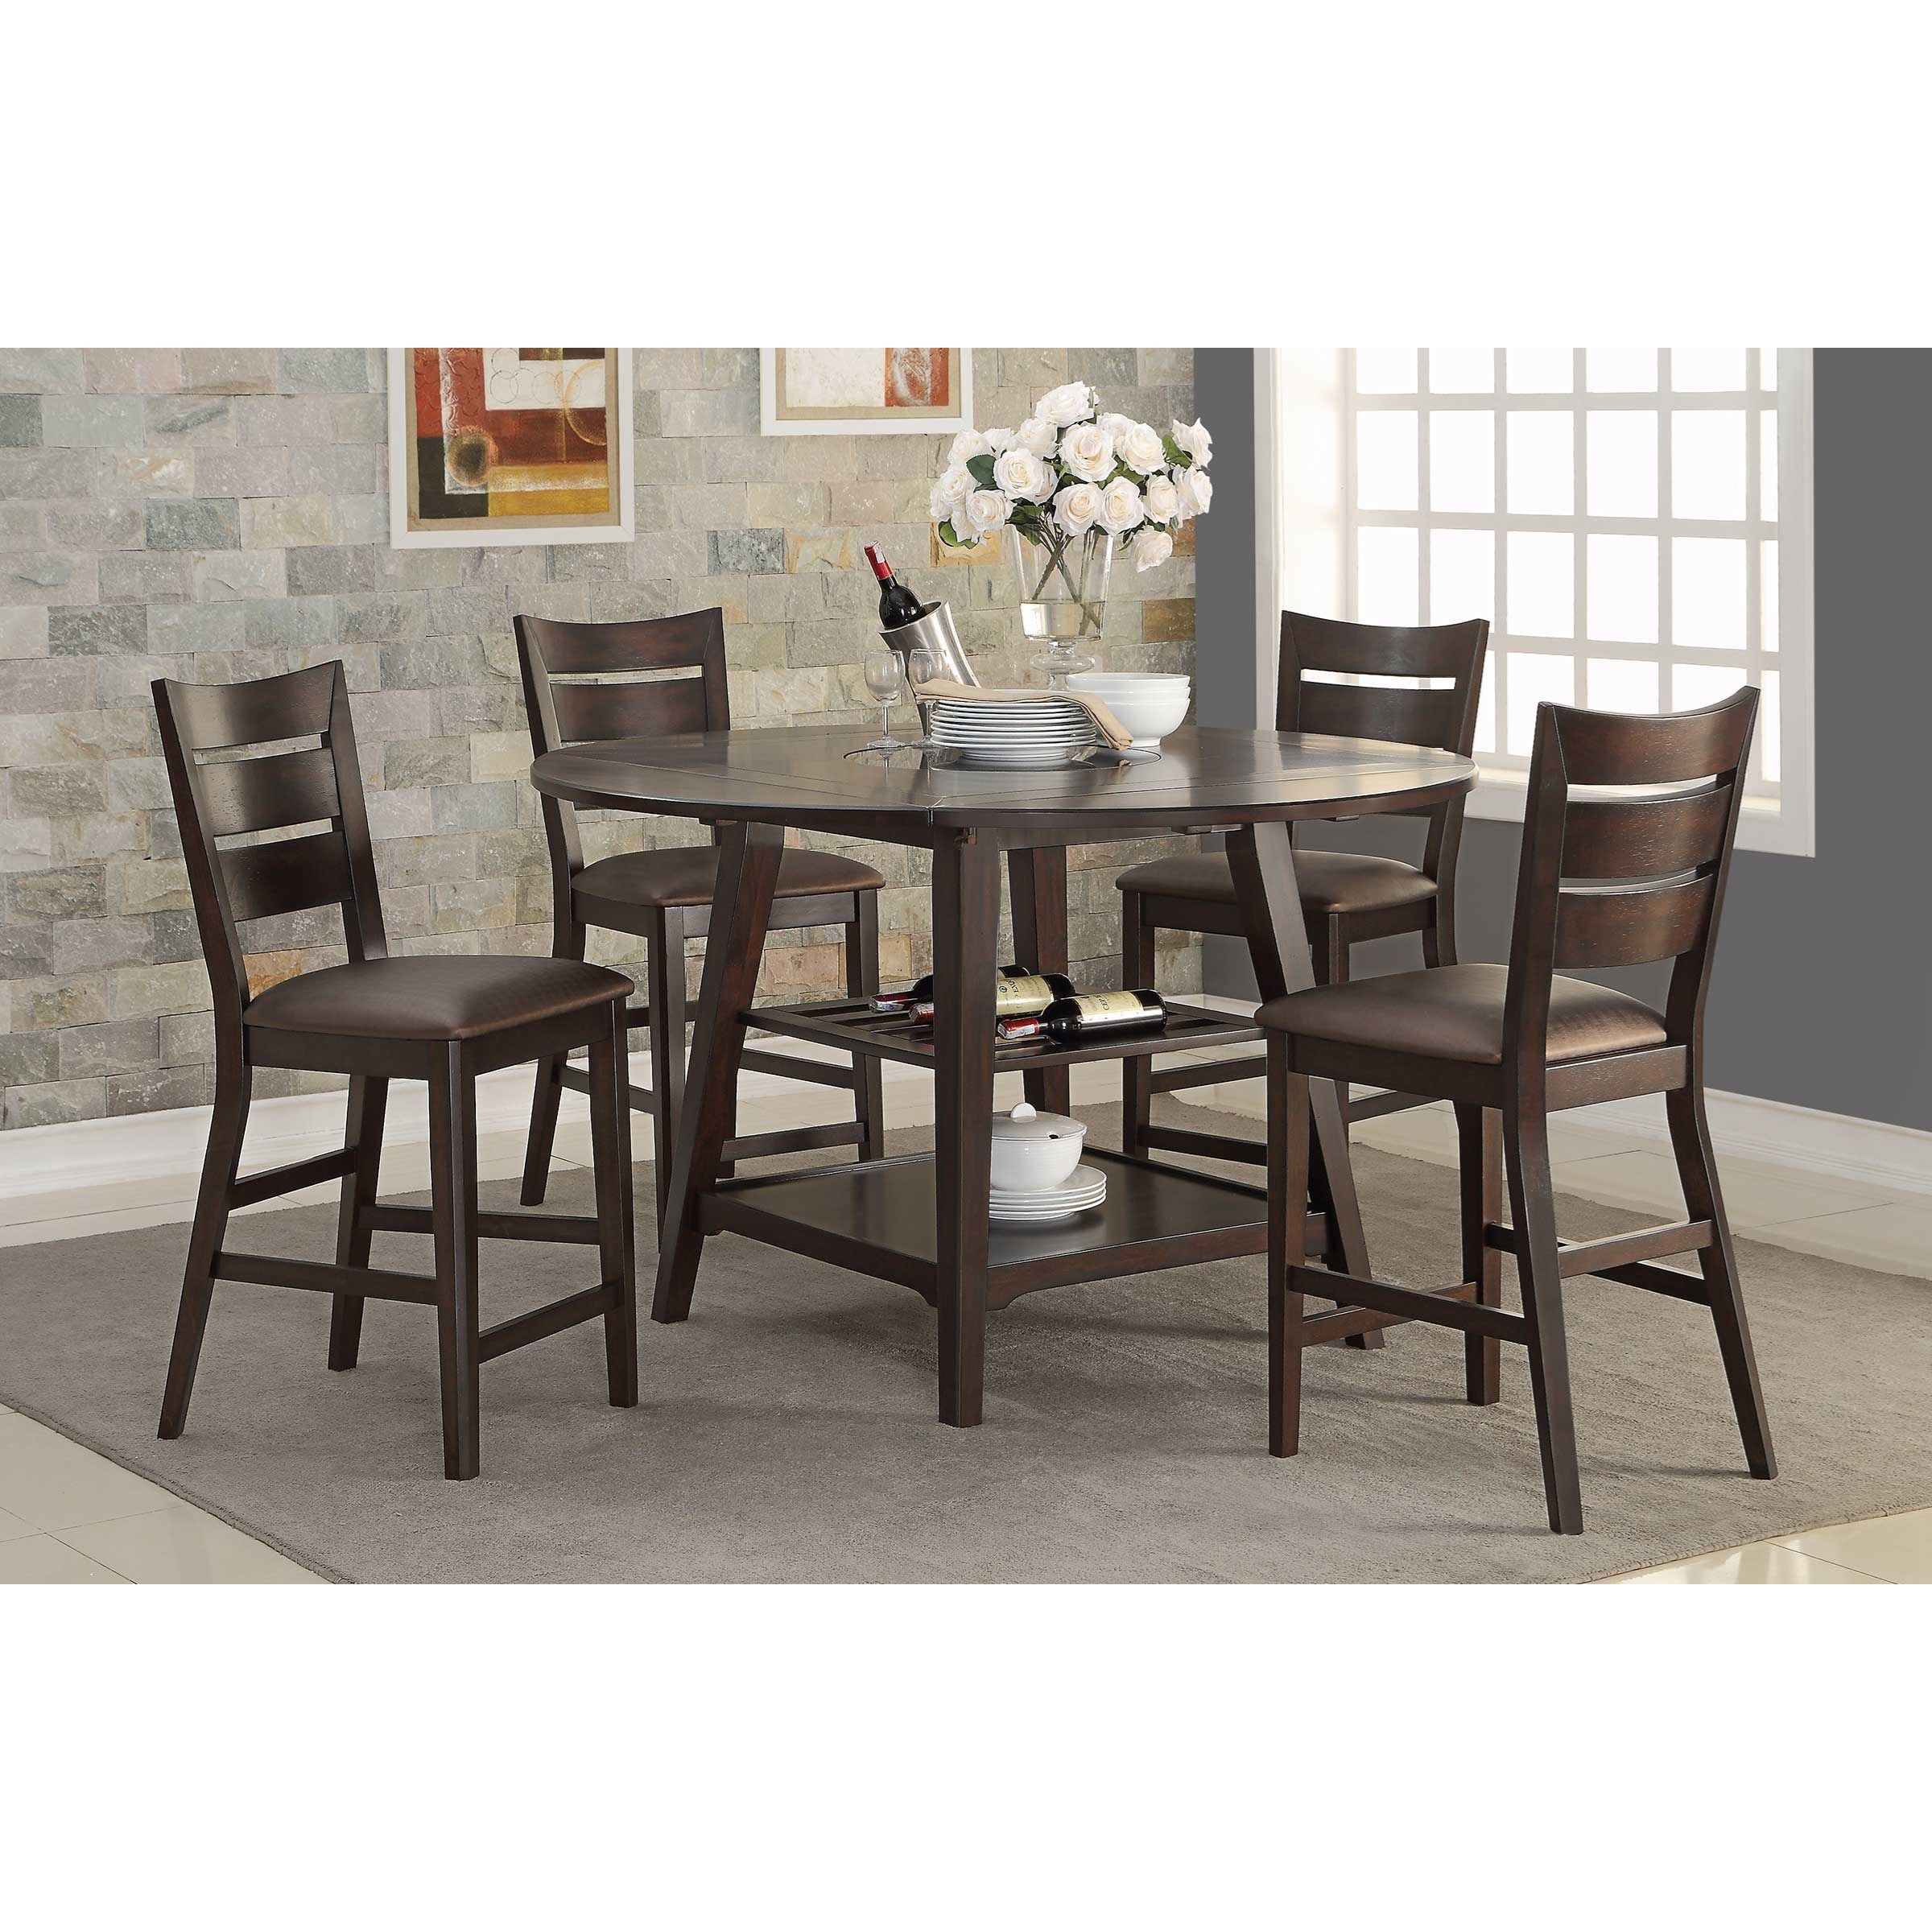 Where Is Winners Only Furniture Made: Winners Only Parkside 5 Piece Counter Height Dining Set